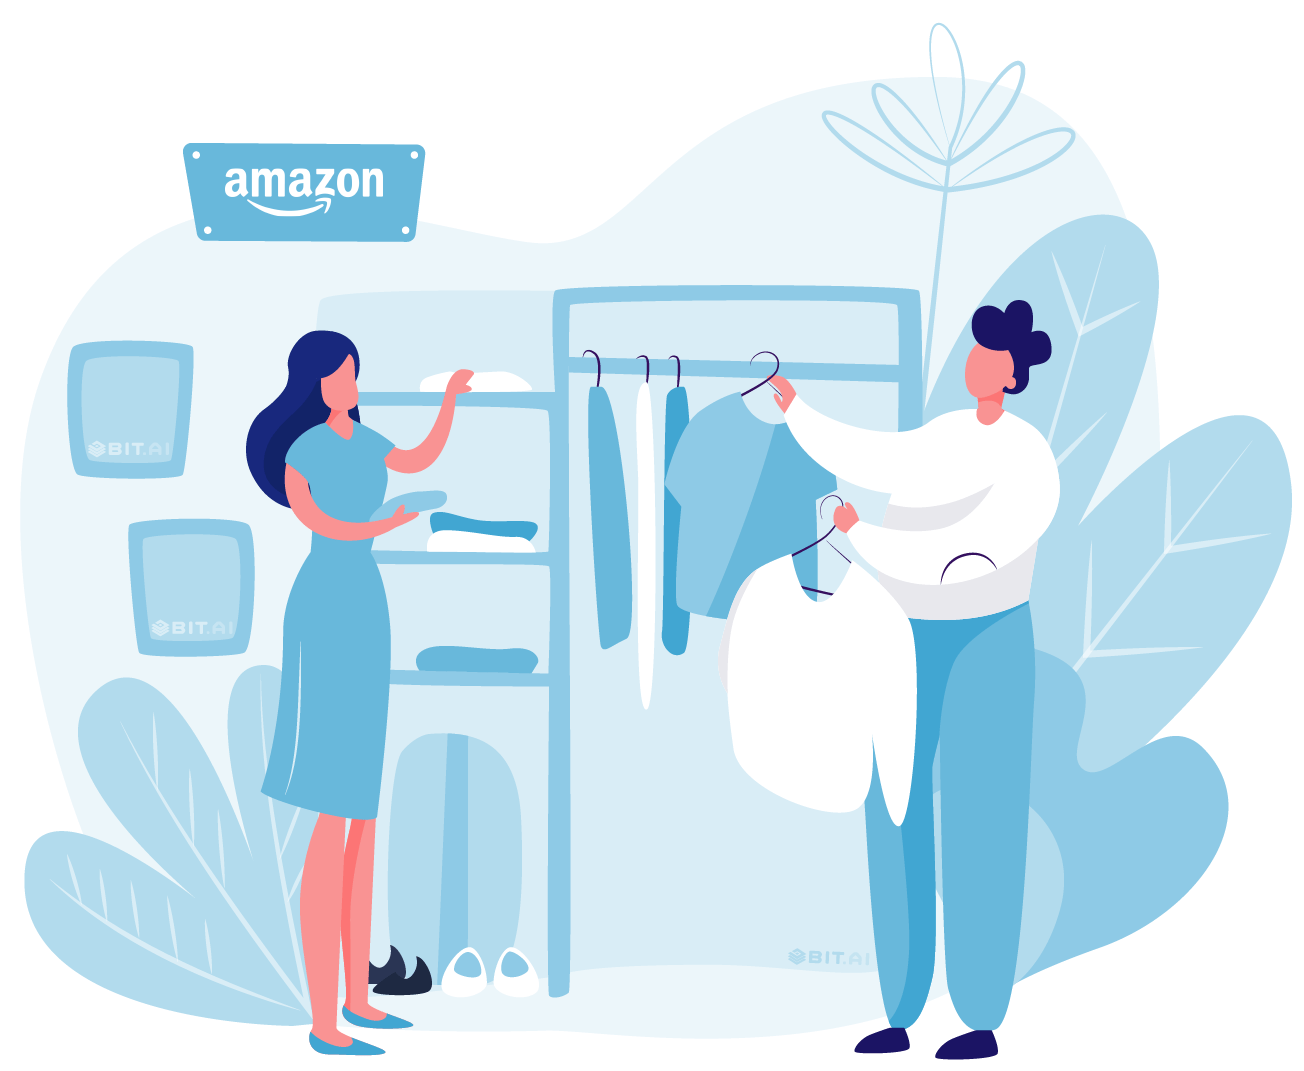 Selling on amazon as an online business idea